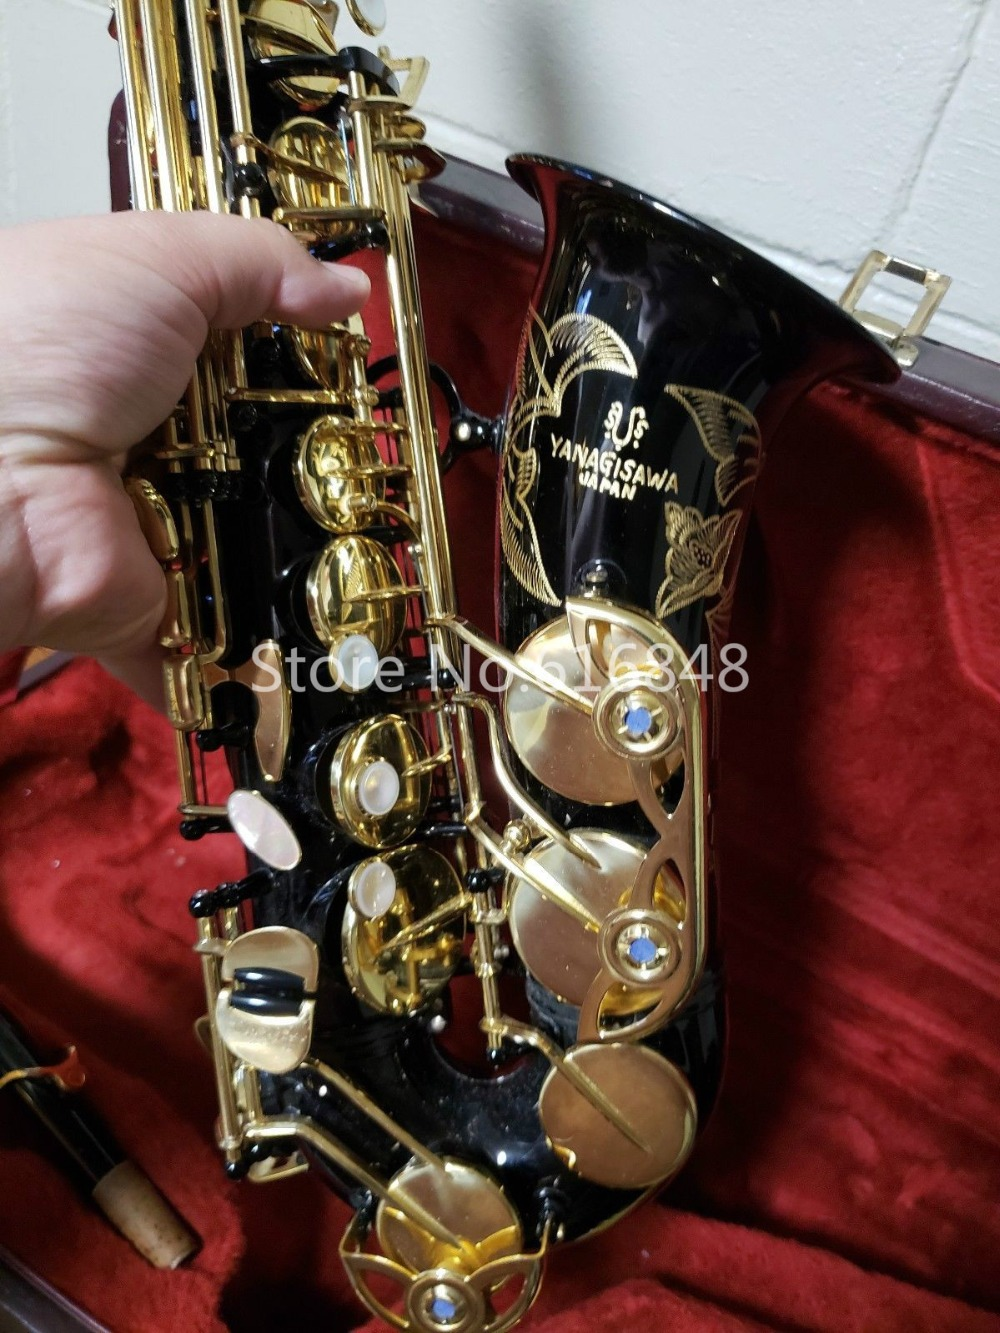 New Arrival YANAGISAWA A-990 Alto Saxophone Brass Tube Black Nickel Gold Surface Eb Tune Instruments With Case And MouthpieceNew Arrival YANAGISAWA A-990 Alto Saxophone Brass Tube Black Nickel Gold Surface Eb Tune Instruments With Case And Mouthpiece